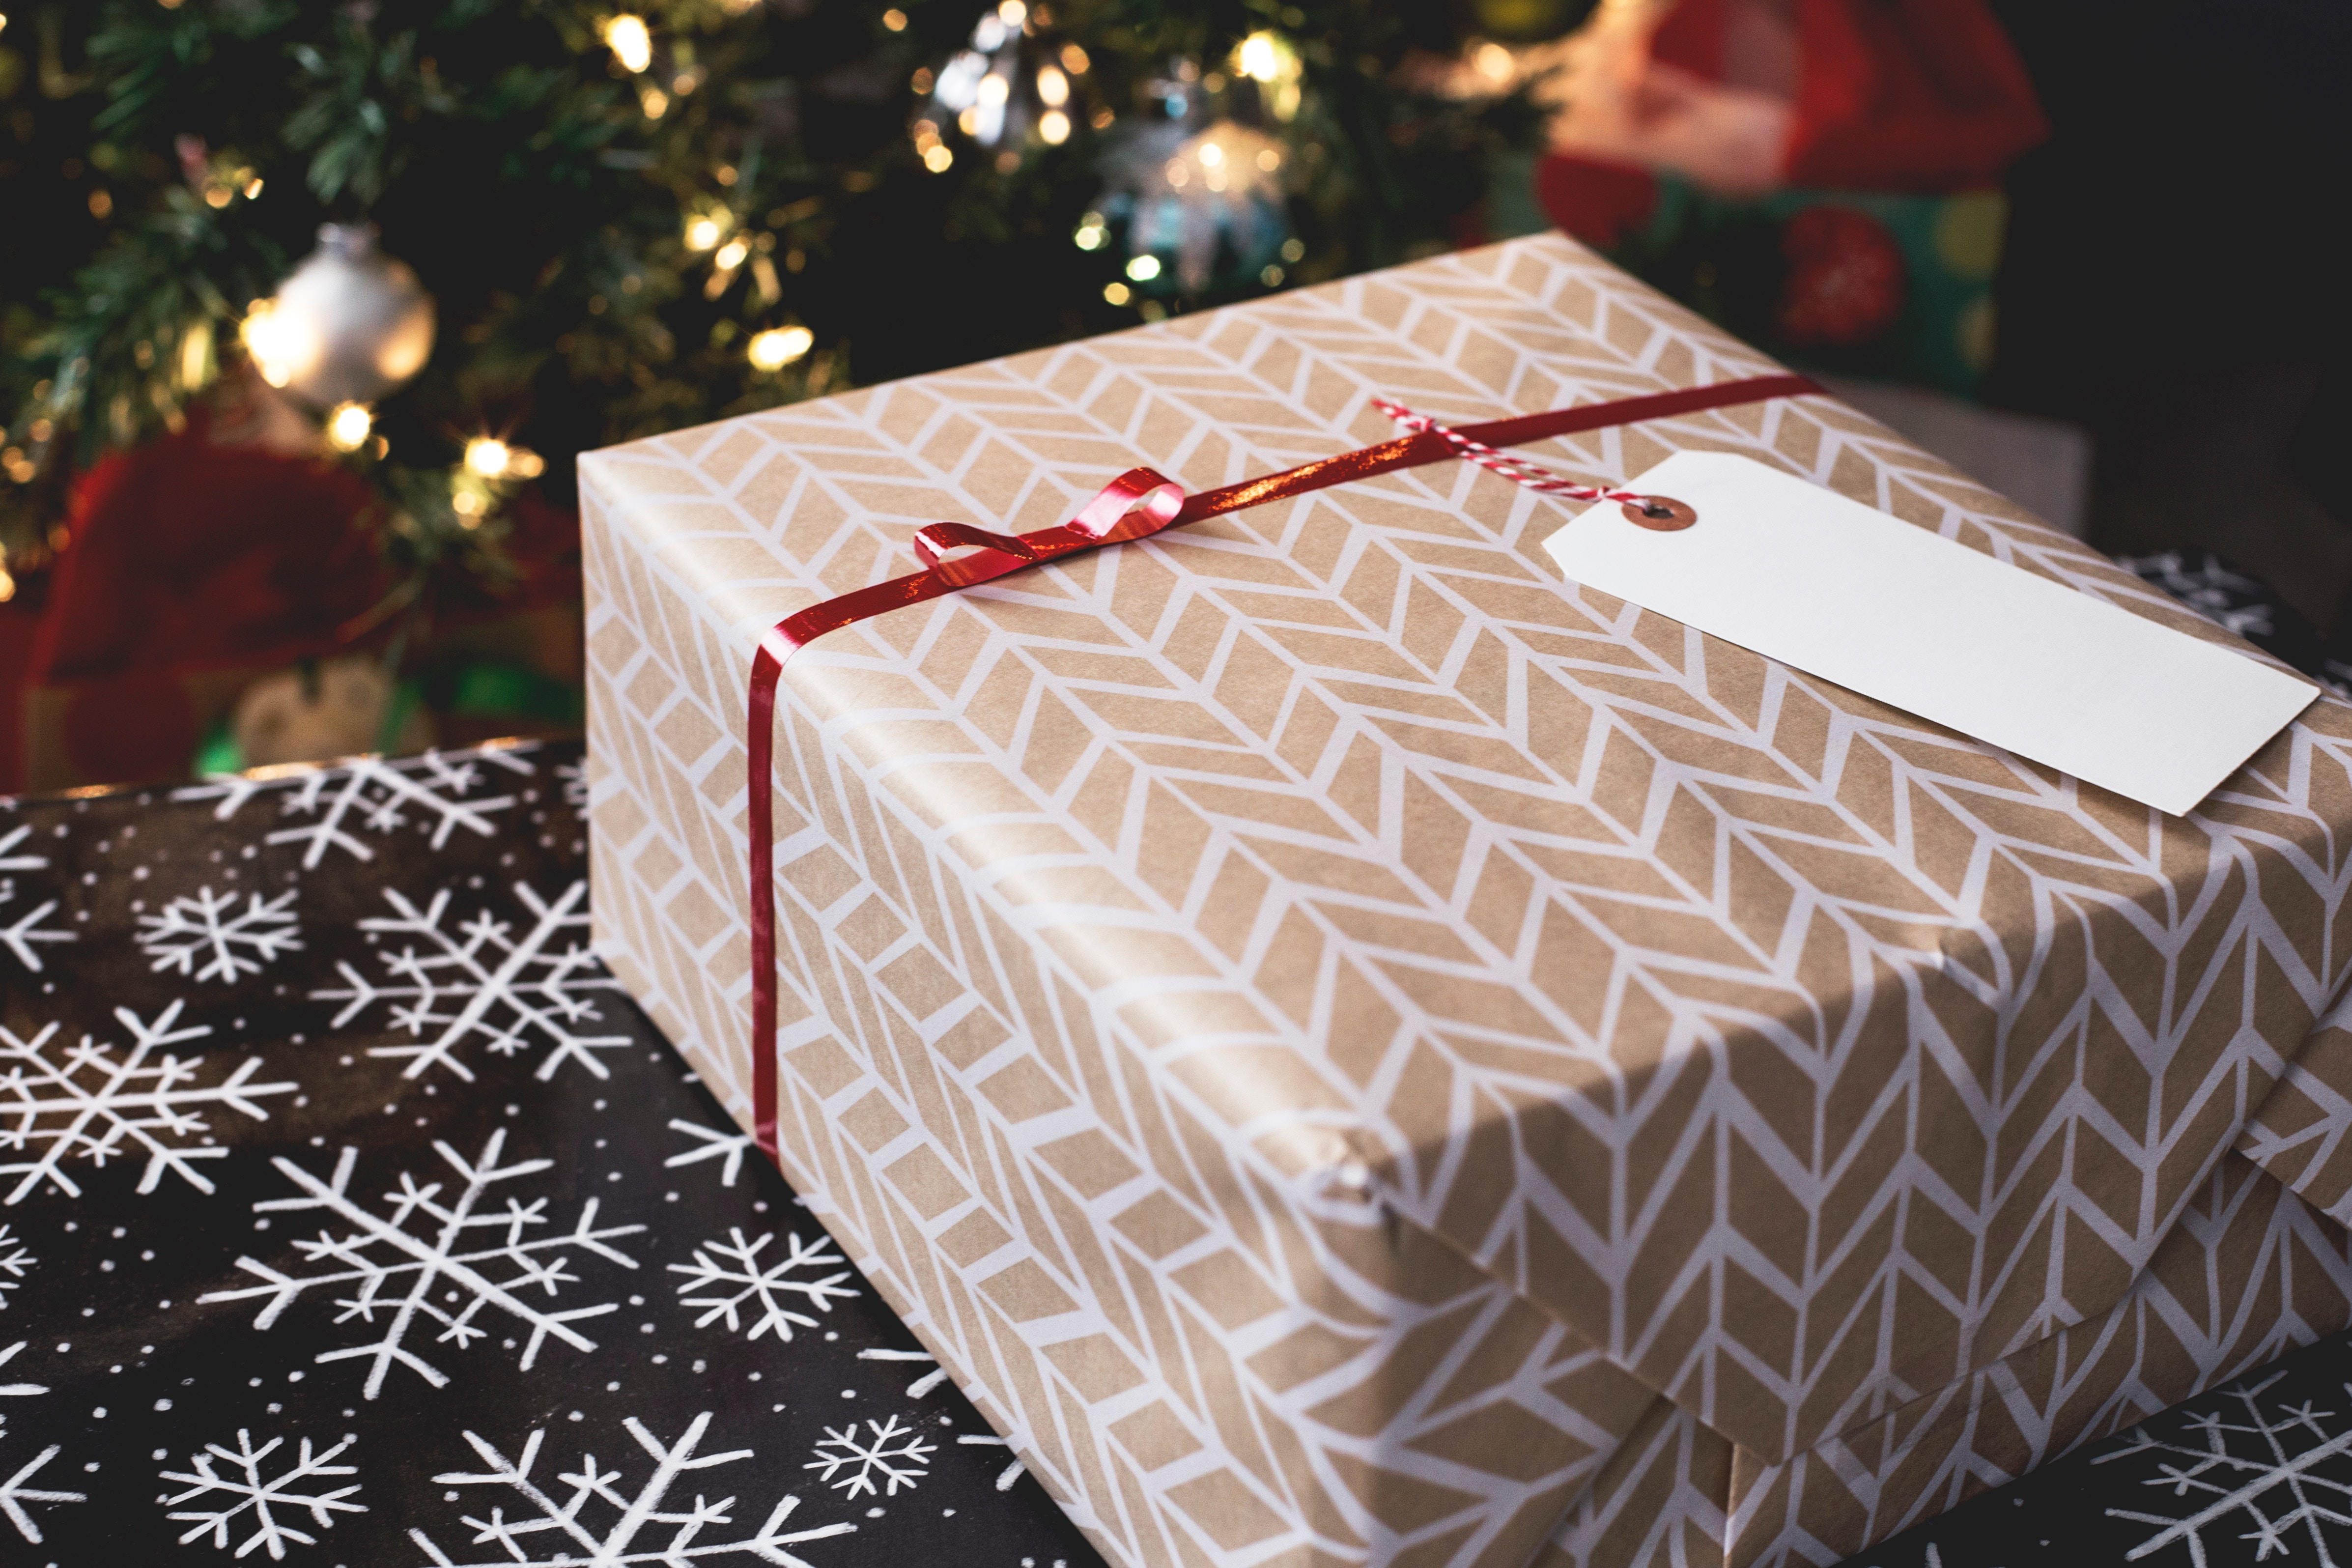 Shop Local and Save Money Holiday Shopping